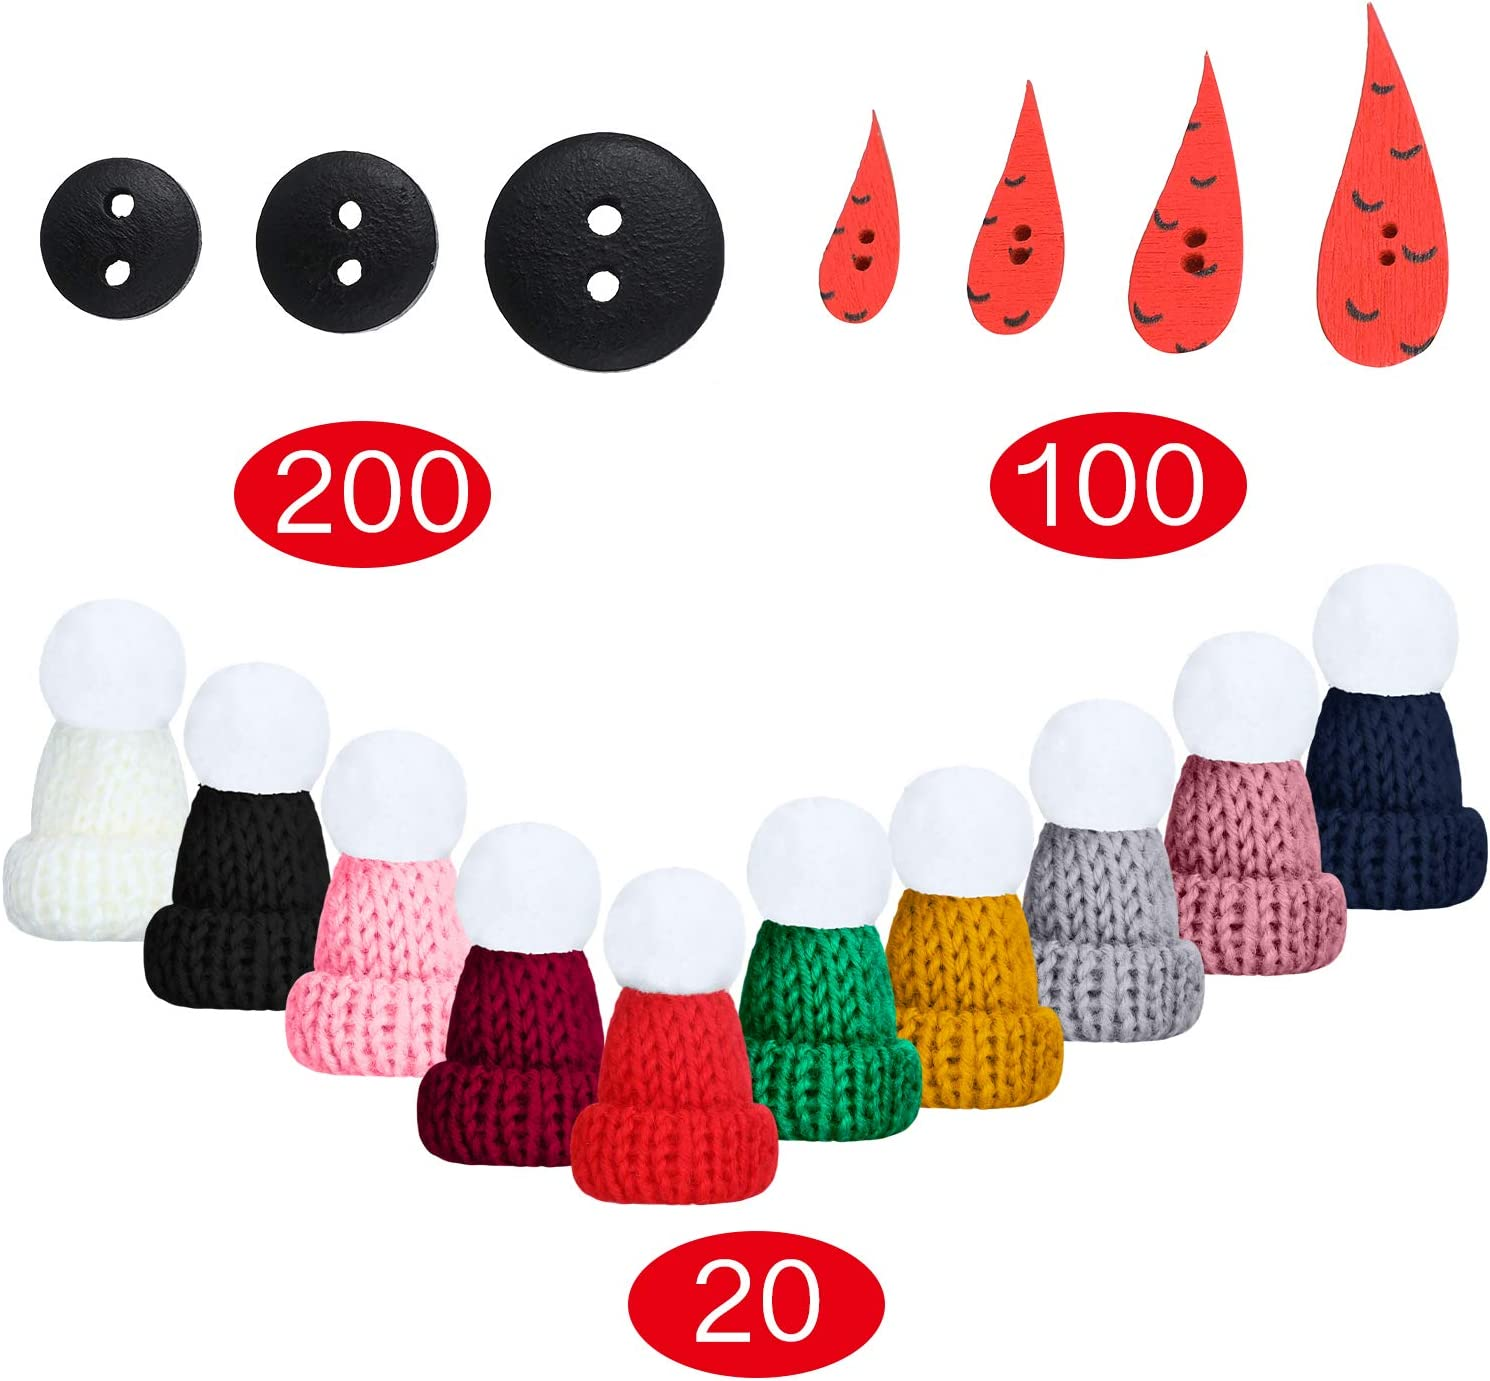 240 Pieces DIY Christmas Snowman kit Included Mini Knit Christmas Hats,Carrot Noses Buttons and Tiny Black Buttons for Christmas Snowman Crafting and Sewing Supplies